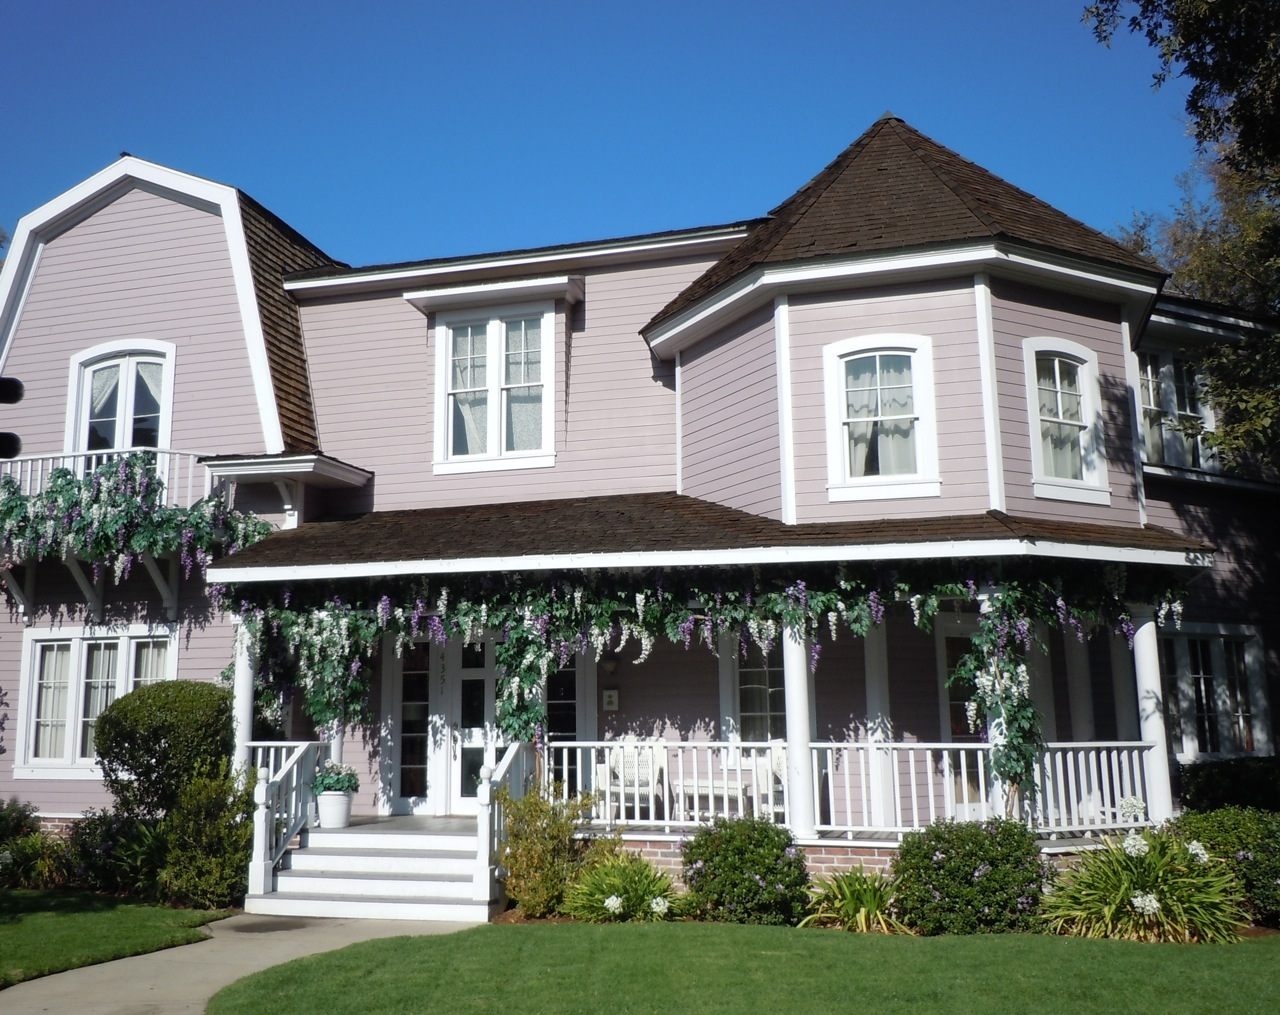 houses Desperate lane housewives wisteria